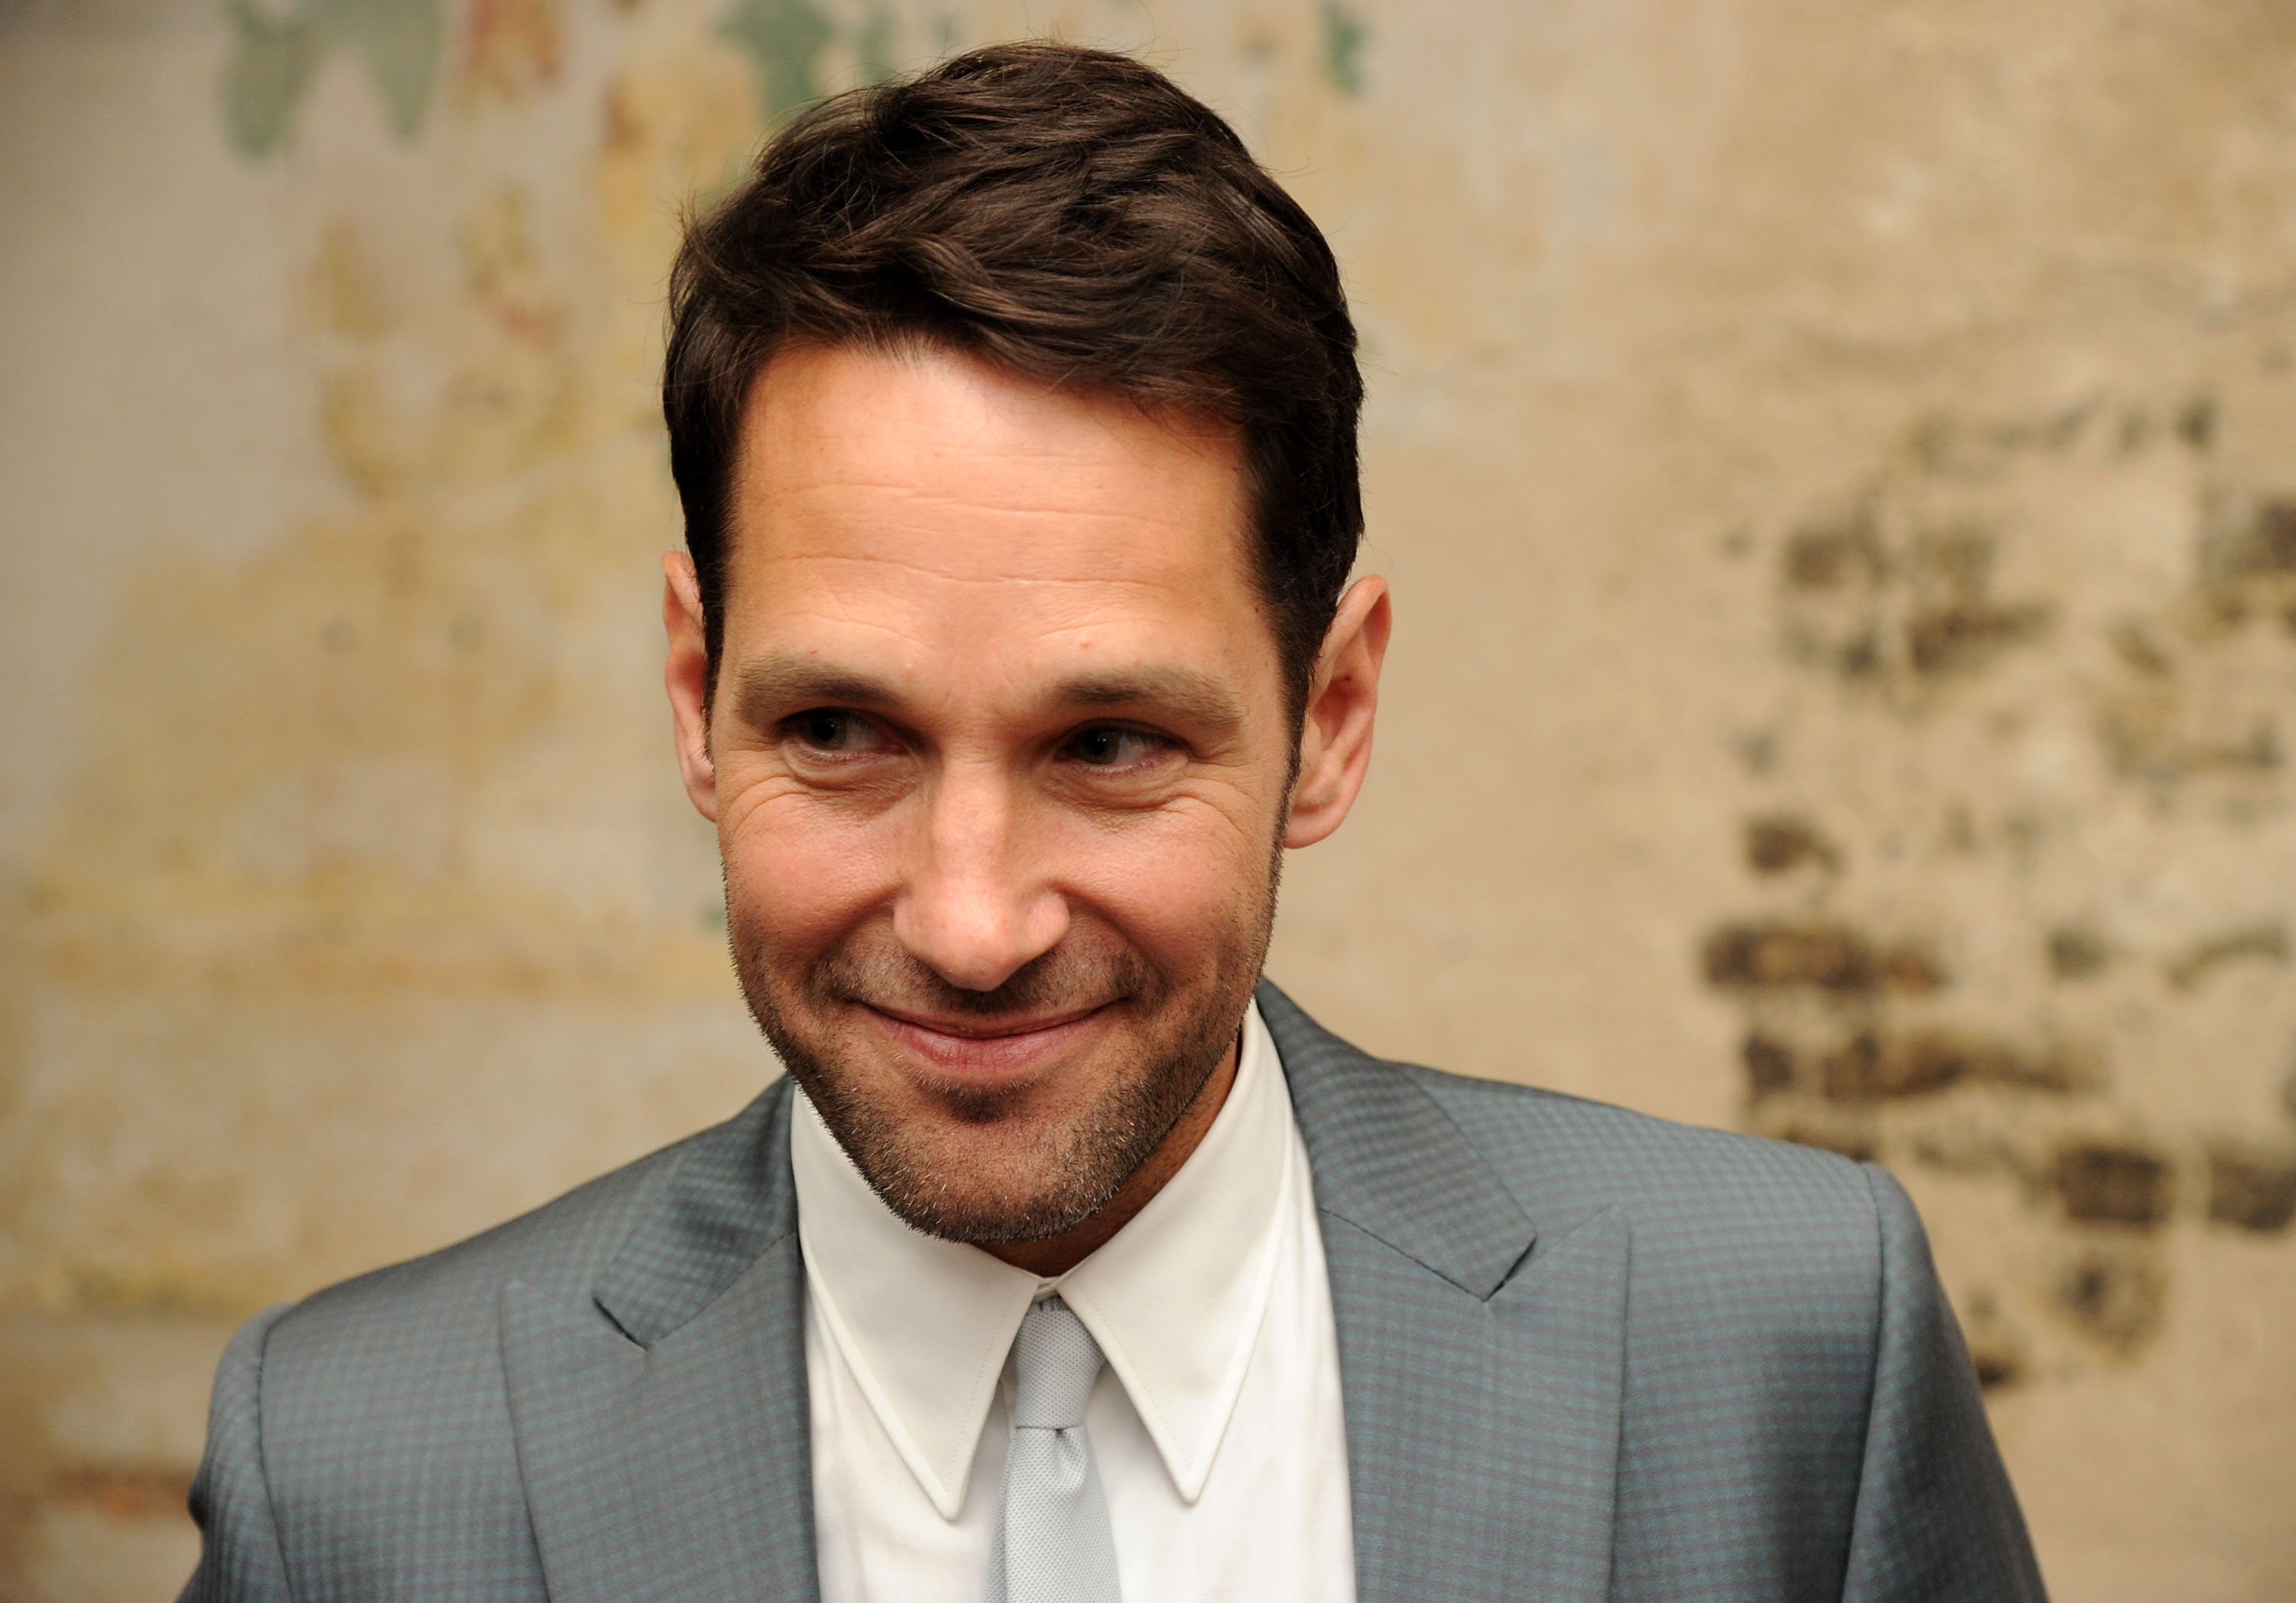 Actor Paul Rudd attends the  They Came Together  screening during theBAMcinemaFest 2014 at BAM Harvey Theater on June 23, 2014 in New York City.